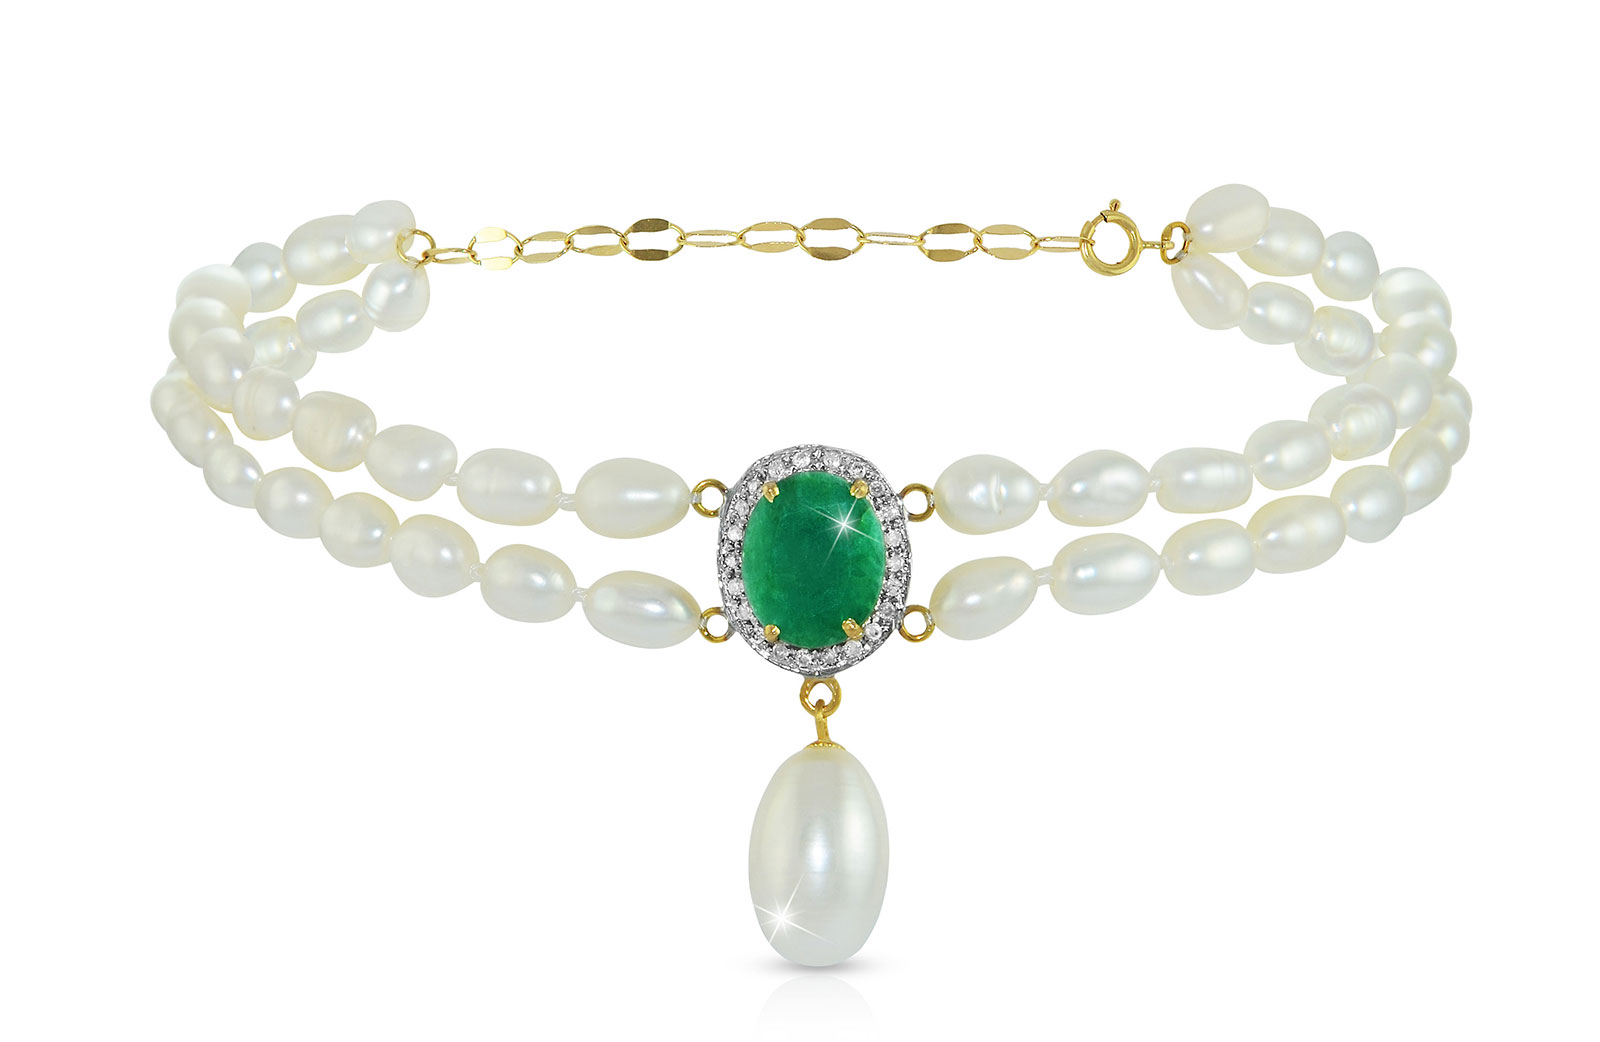 Vera Perla 18k  Gold 10mm Genuine Oval   Cut Emerald 0.12Ct Genuine Diamonds and Pearls Bracelet